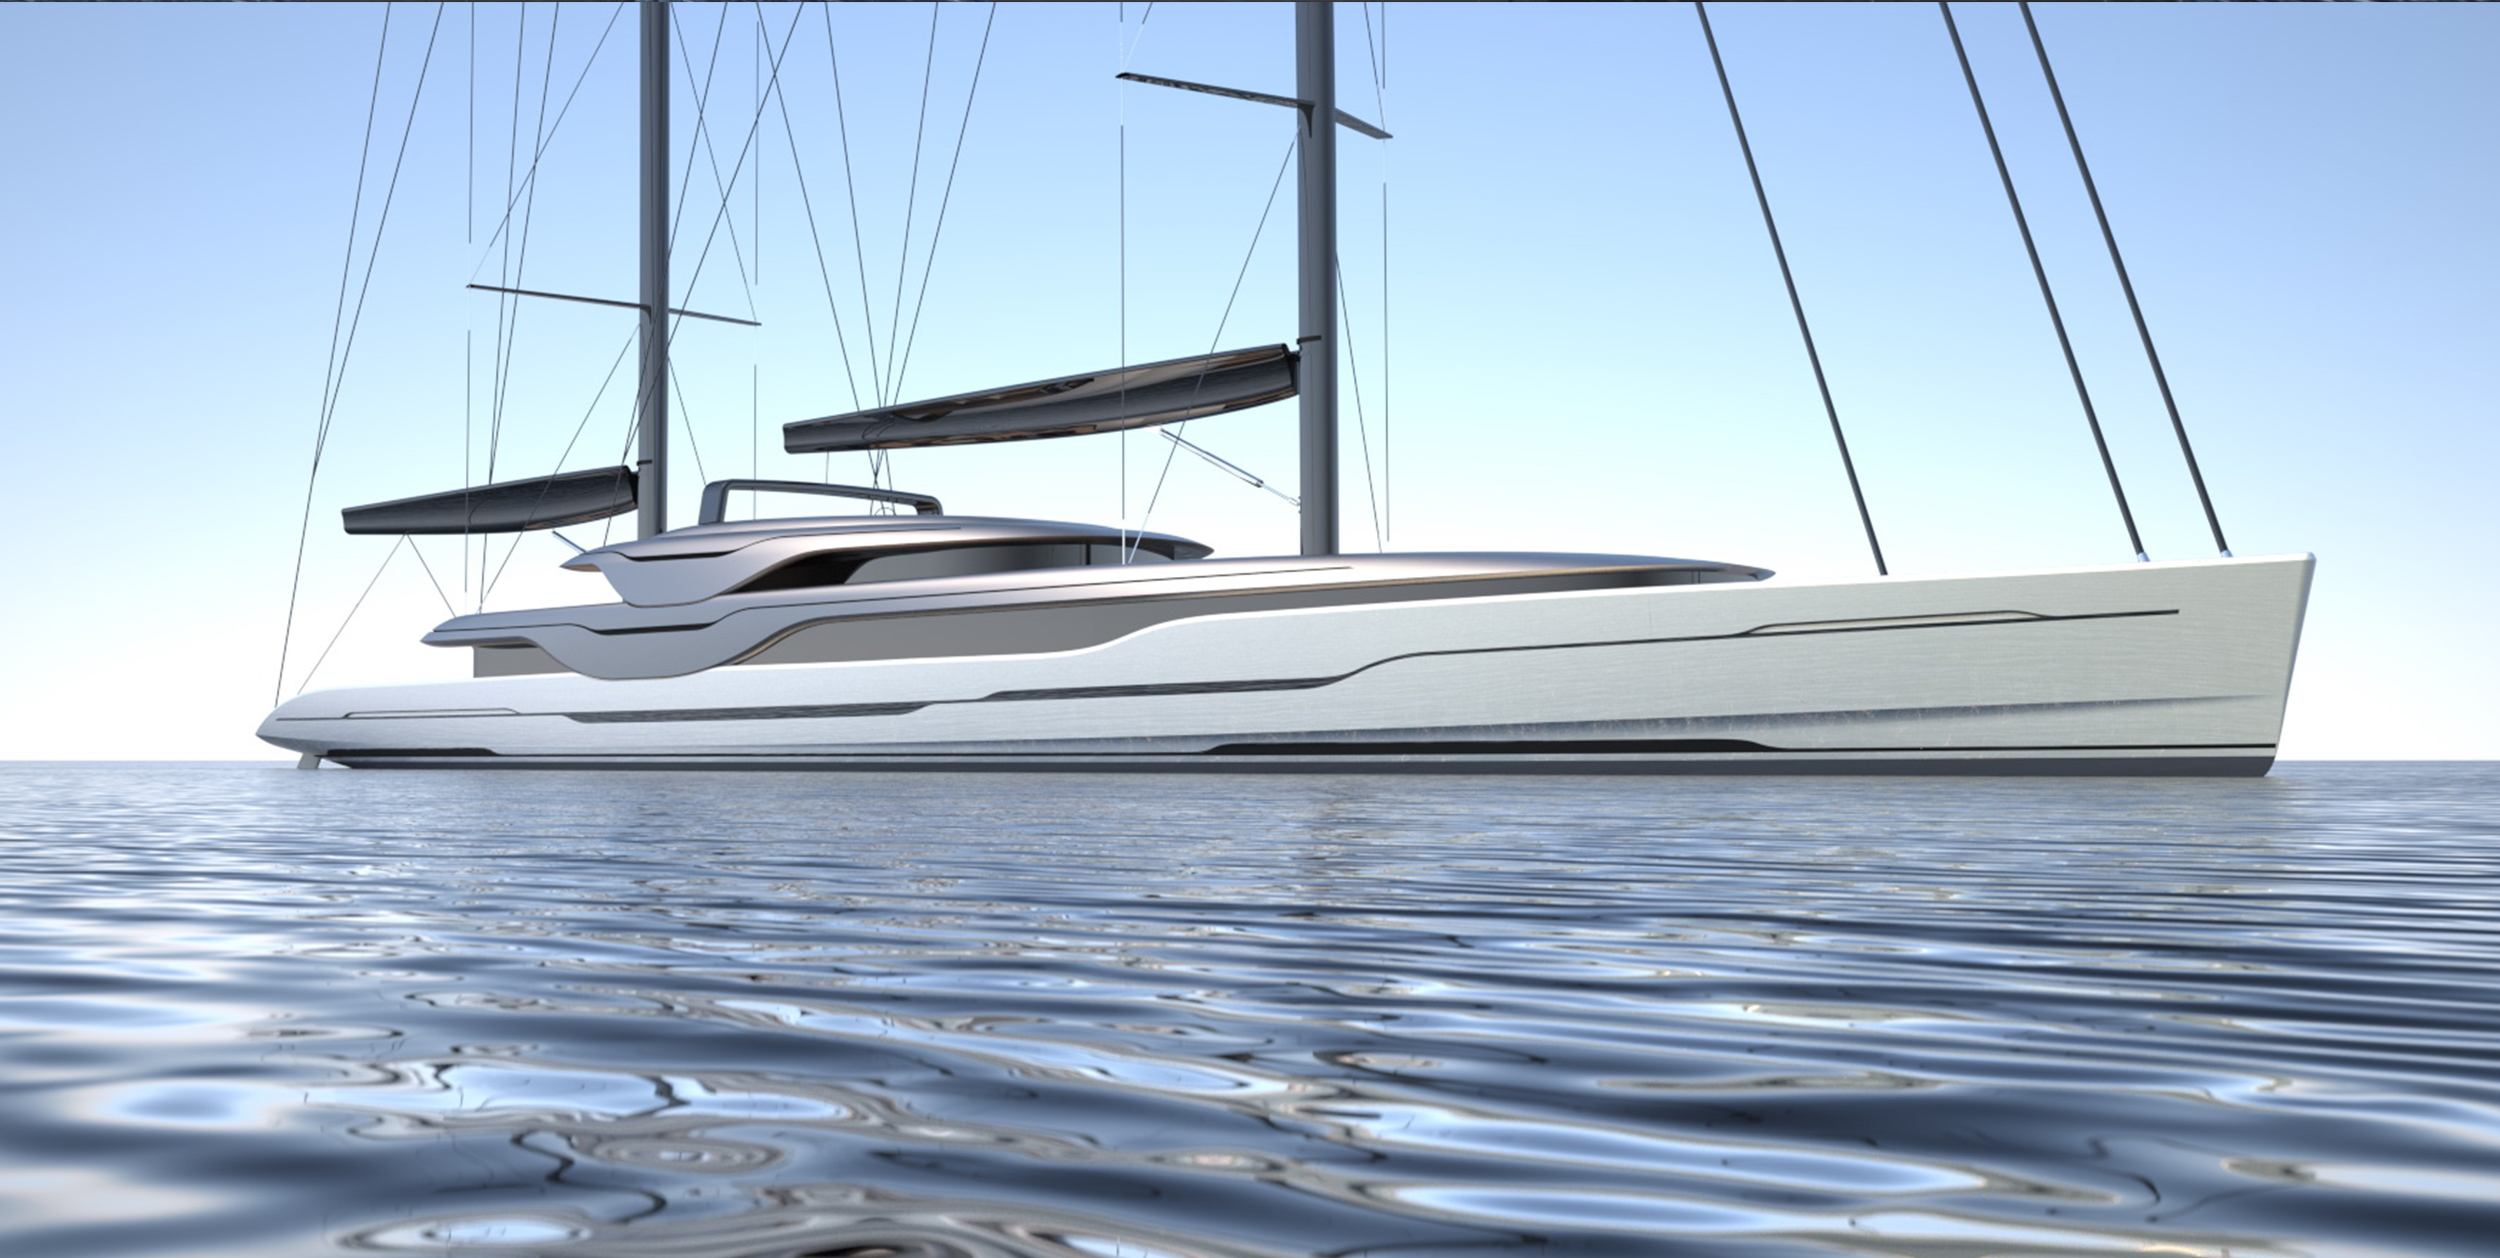 Sailing Yachts Innovation By Design